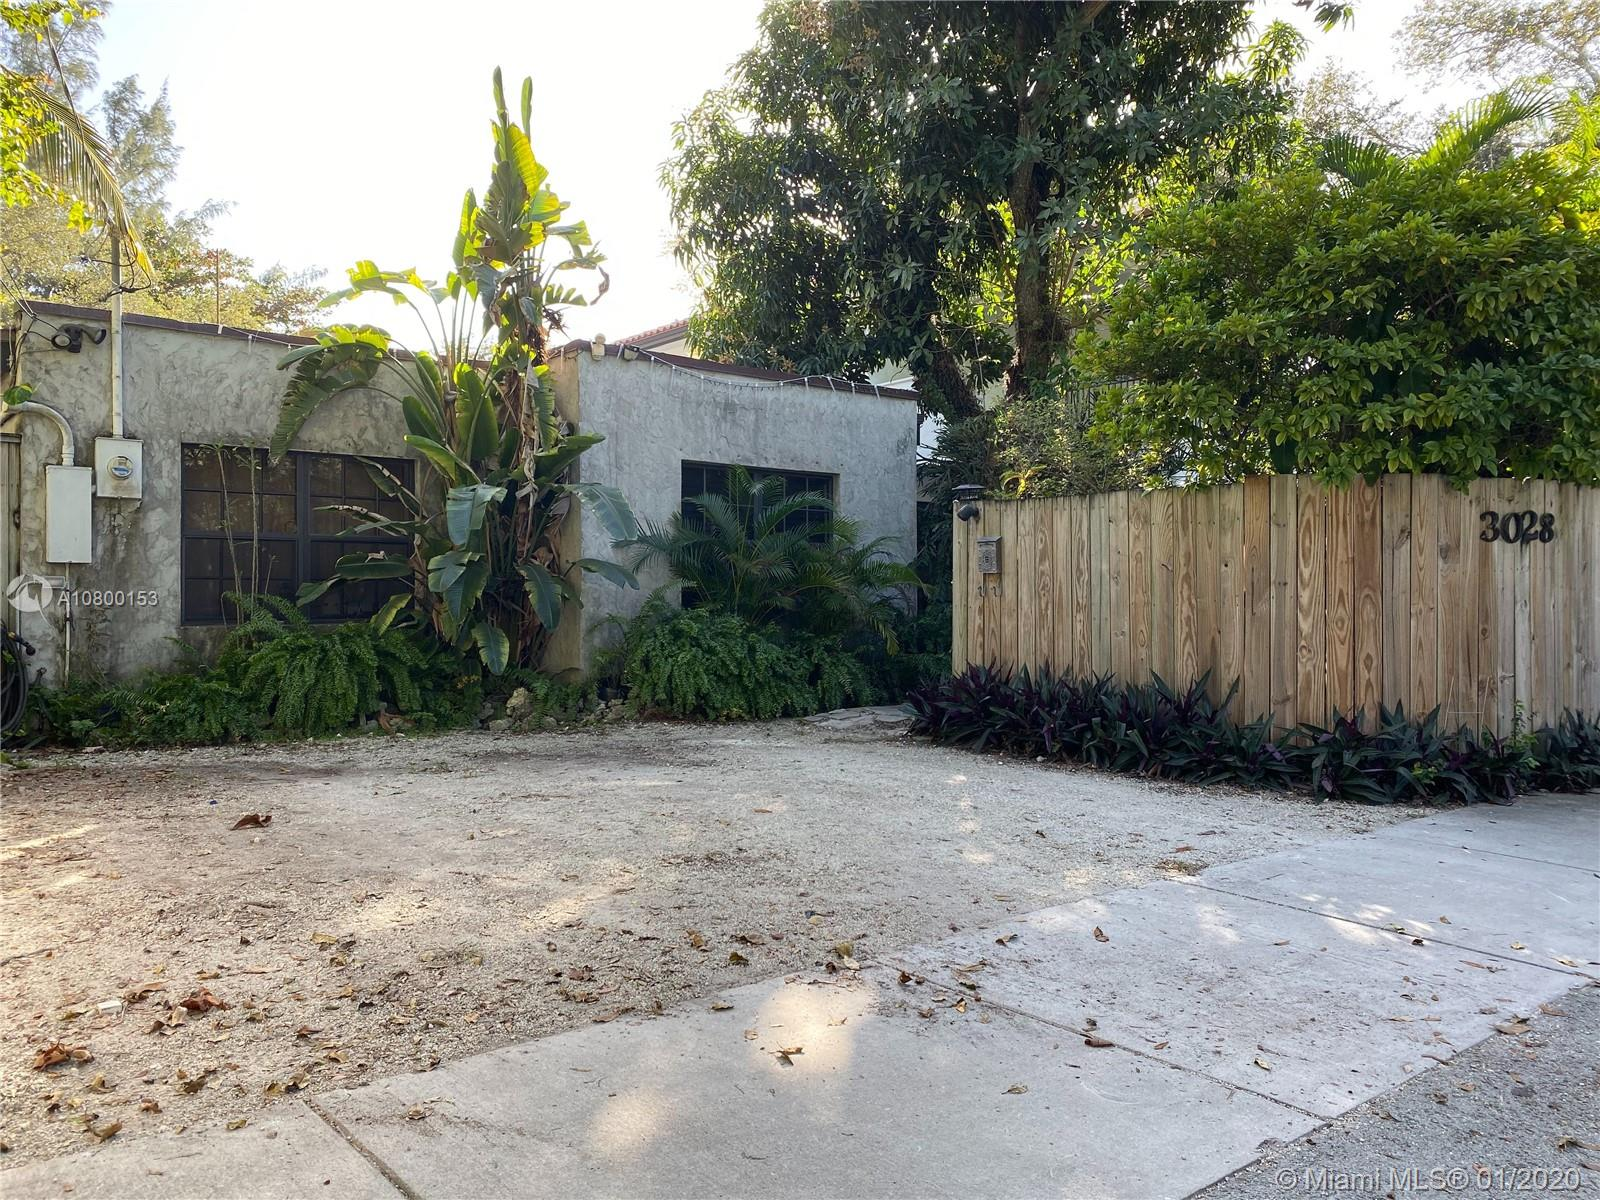 This unique property in the heart of the grove has great opportunity. Situate yourself directly across Blanche Park which offers a fully renovated dog and children's park. This property features a one of a kind, custom, grotto style swimming pool. The property is walking distance to retail, restaurants, and much more! Zoned for duplex.